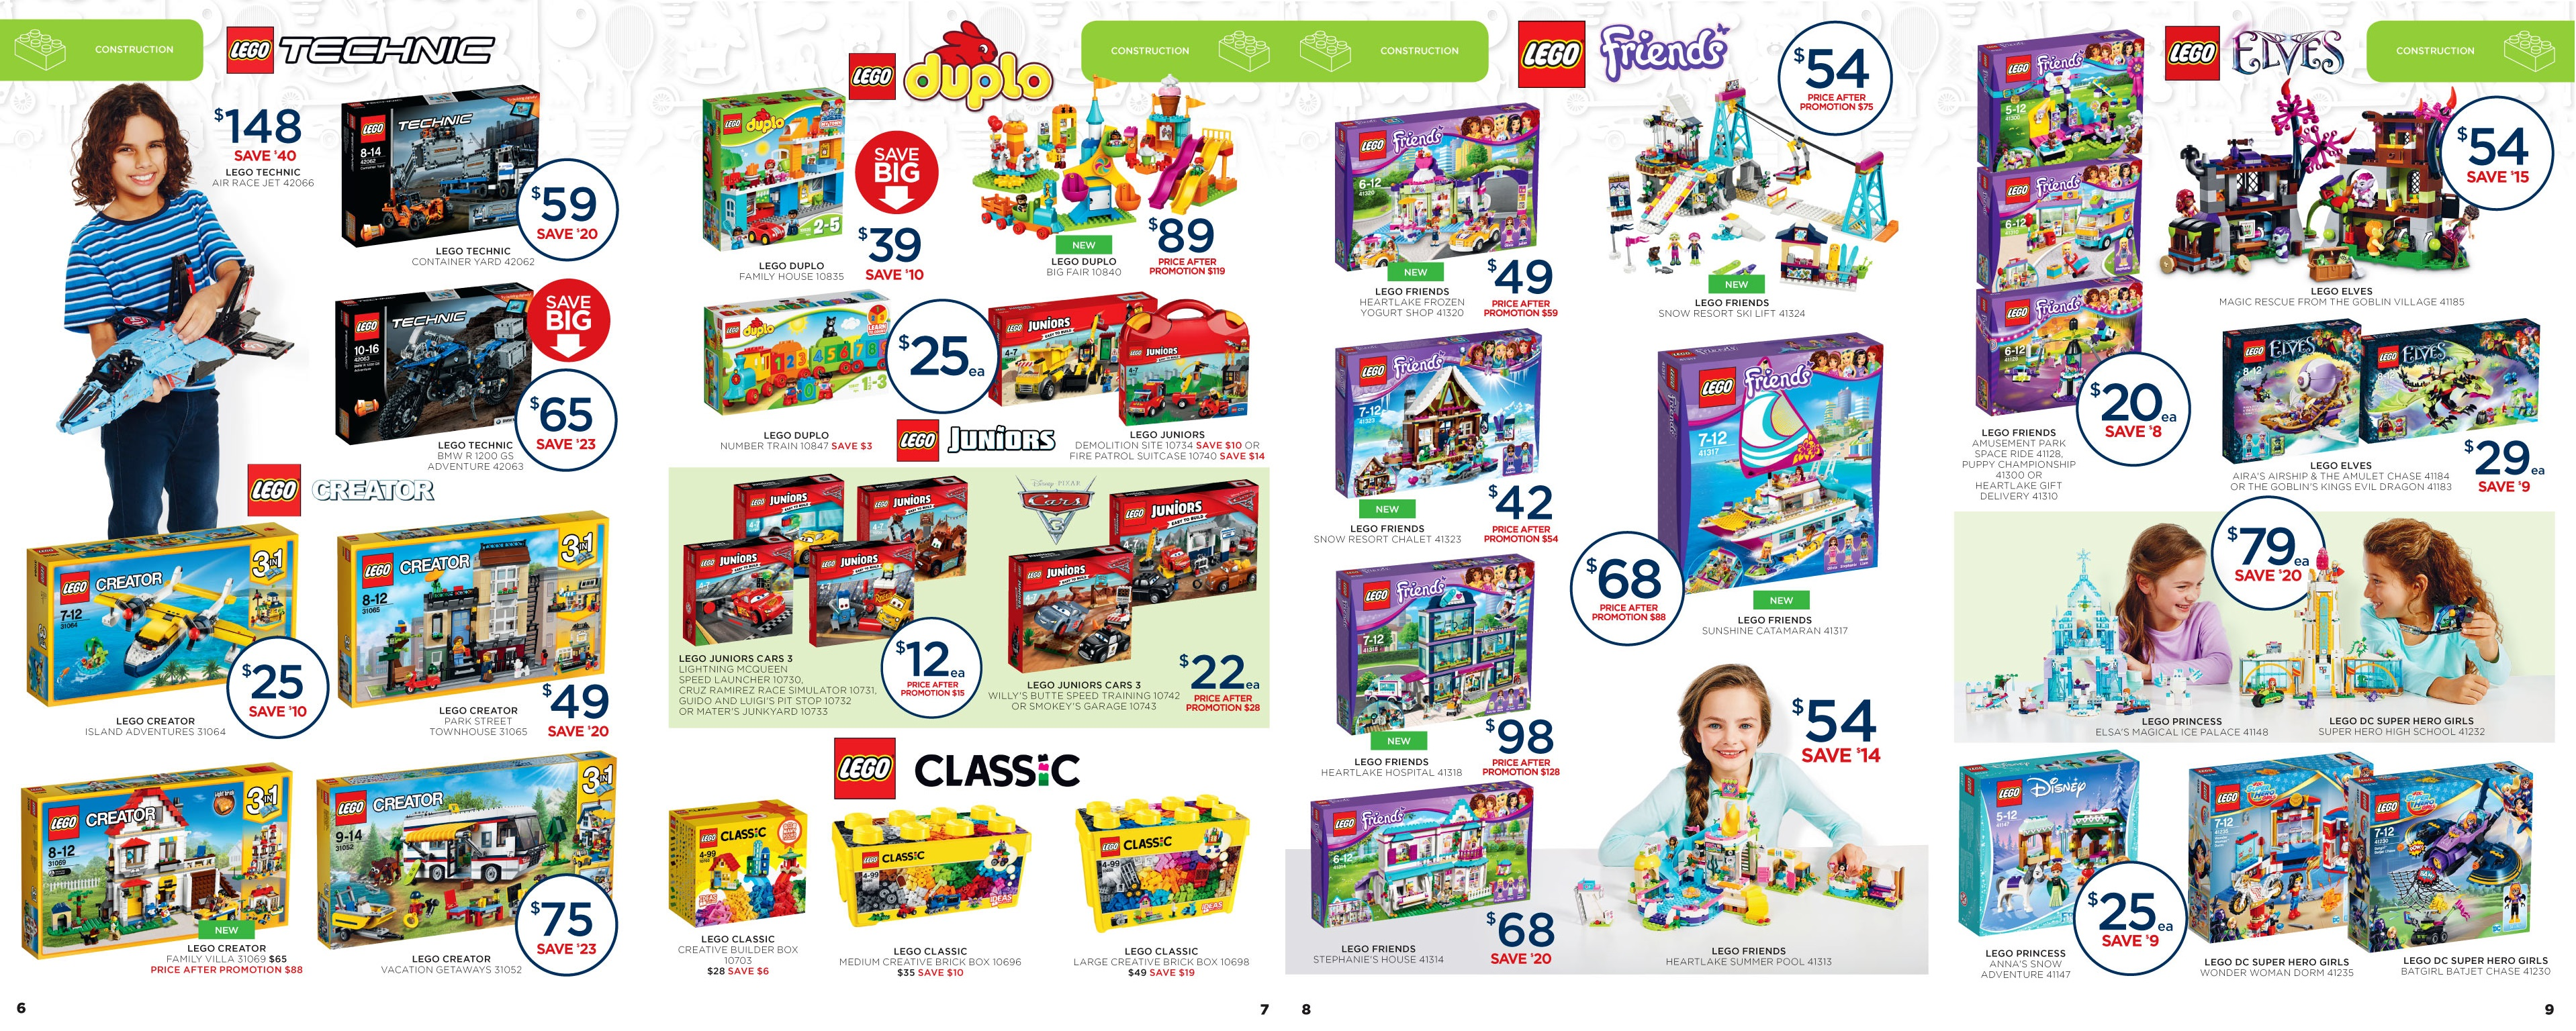 0948ba359c1 Big W have a monster of a LEGO sale and this is quite possibly one of the  better sales this time round. Big W's catalogue is massive, and pretty much  covers ...